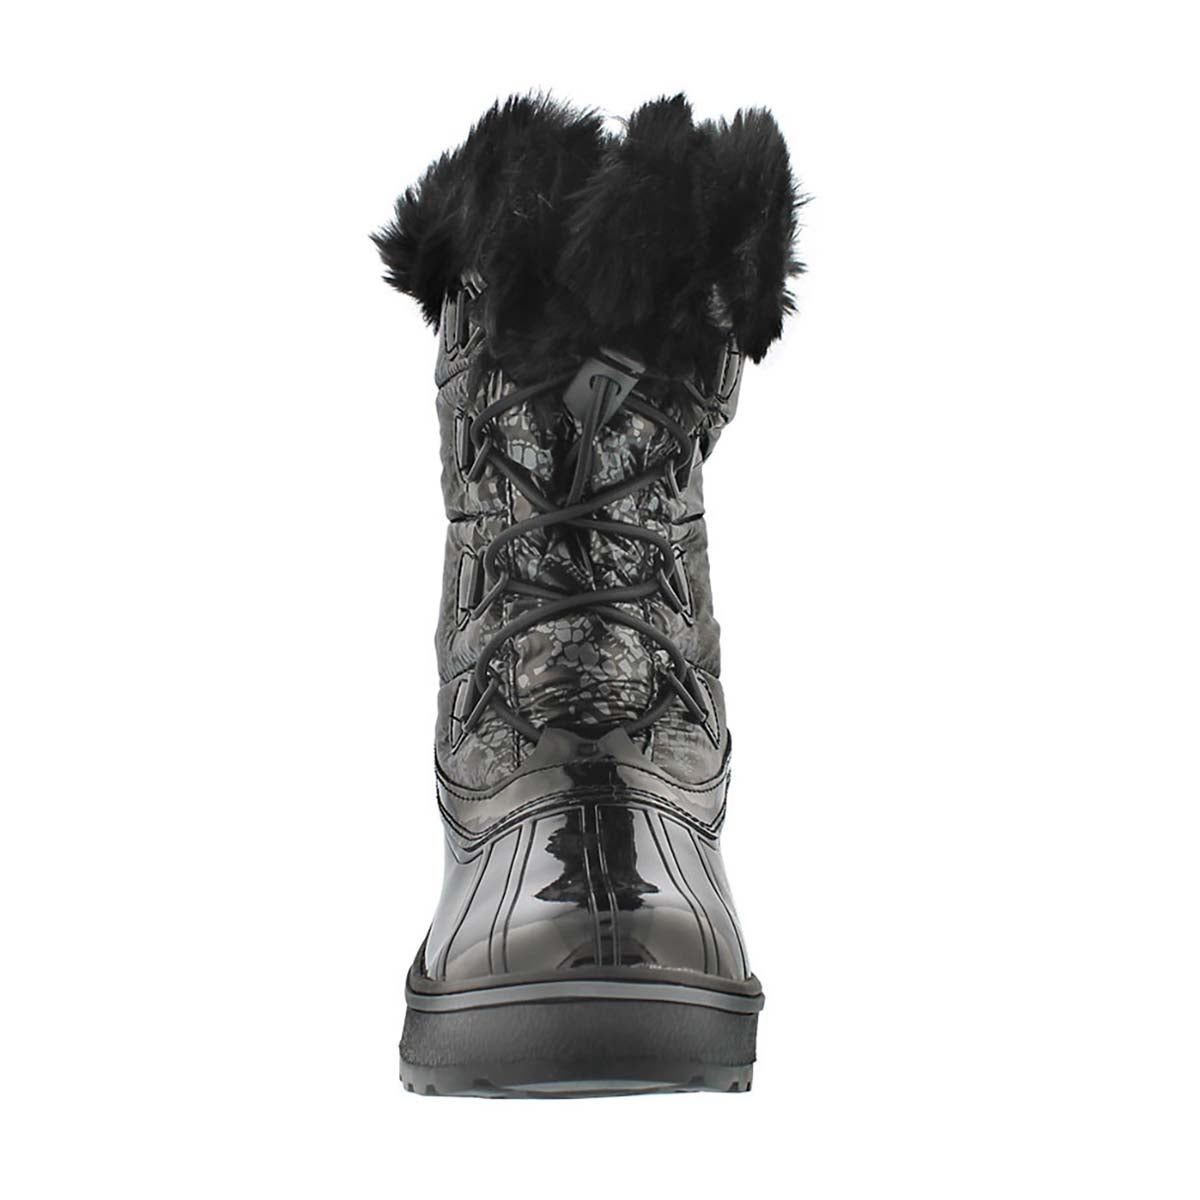 Grls Alisha black/silver wpf winter boot